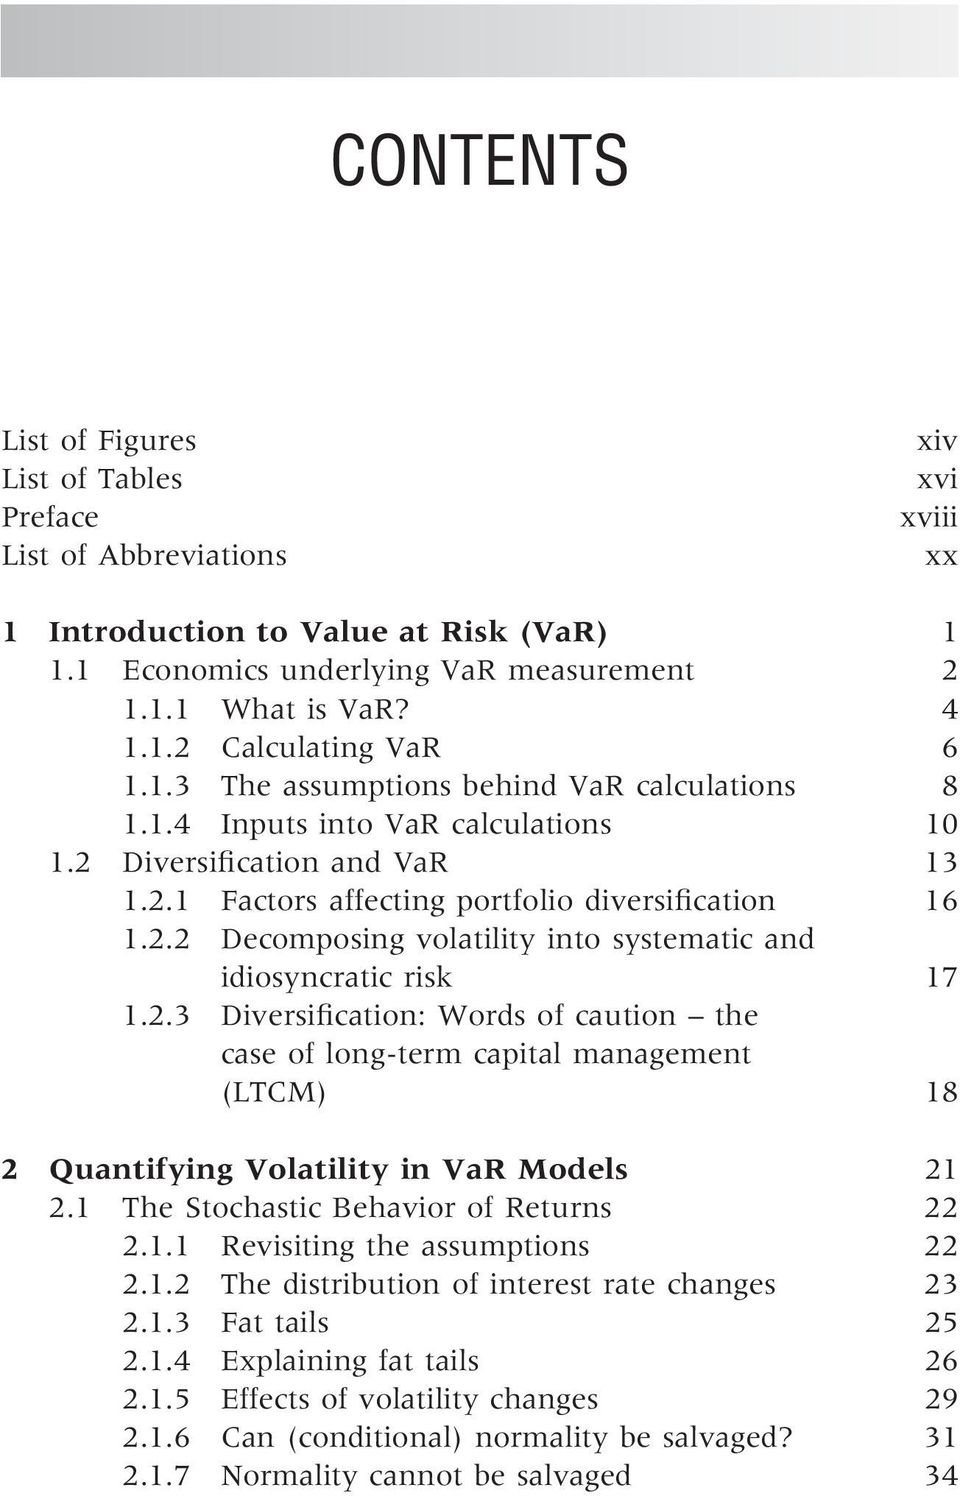 2.3 Diversification: Words of caution the case of long-term capital management (LTCM) 18 2 Quantifying Volatility in VaR Models 21 2.1 The Stochastic Behavior of Returns 22 2.1.1 Revisiting the assumptions 22 2.